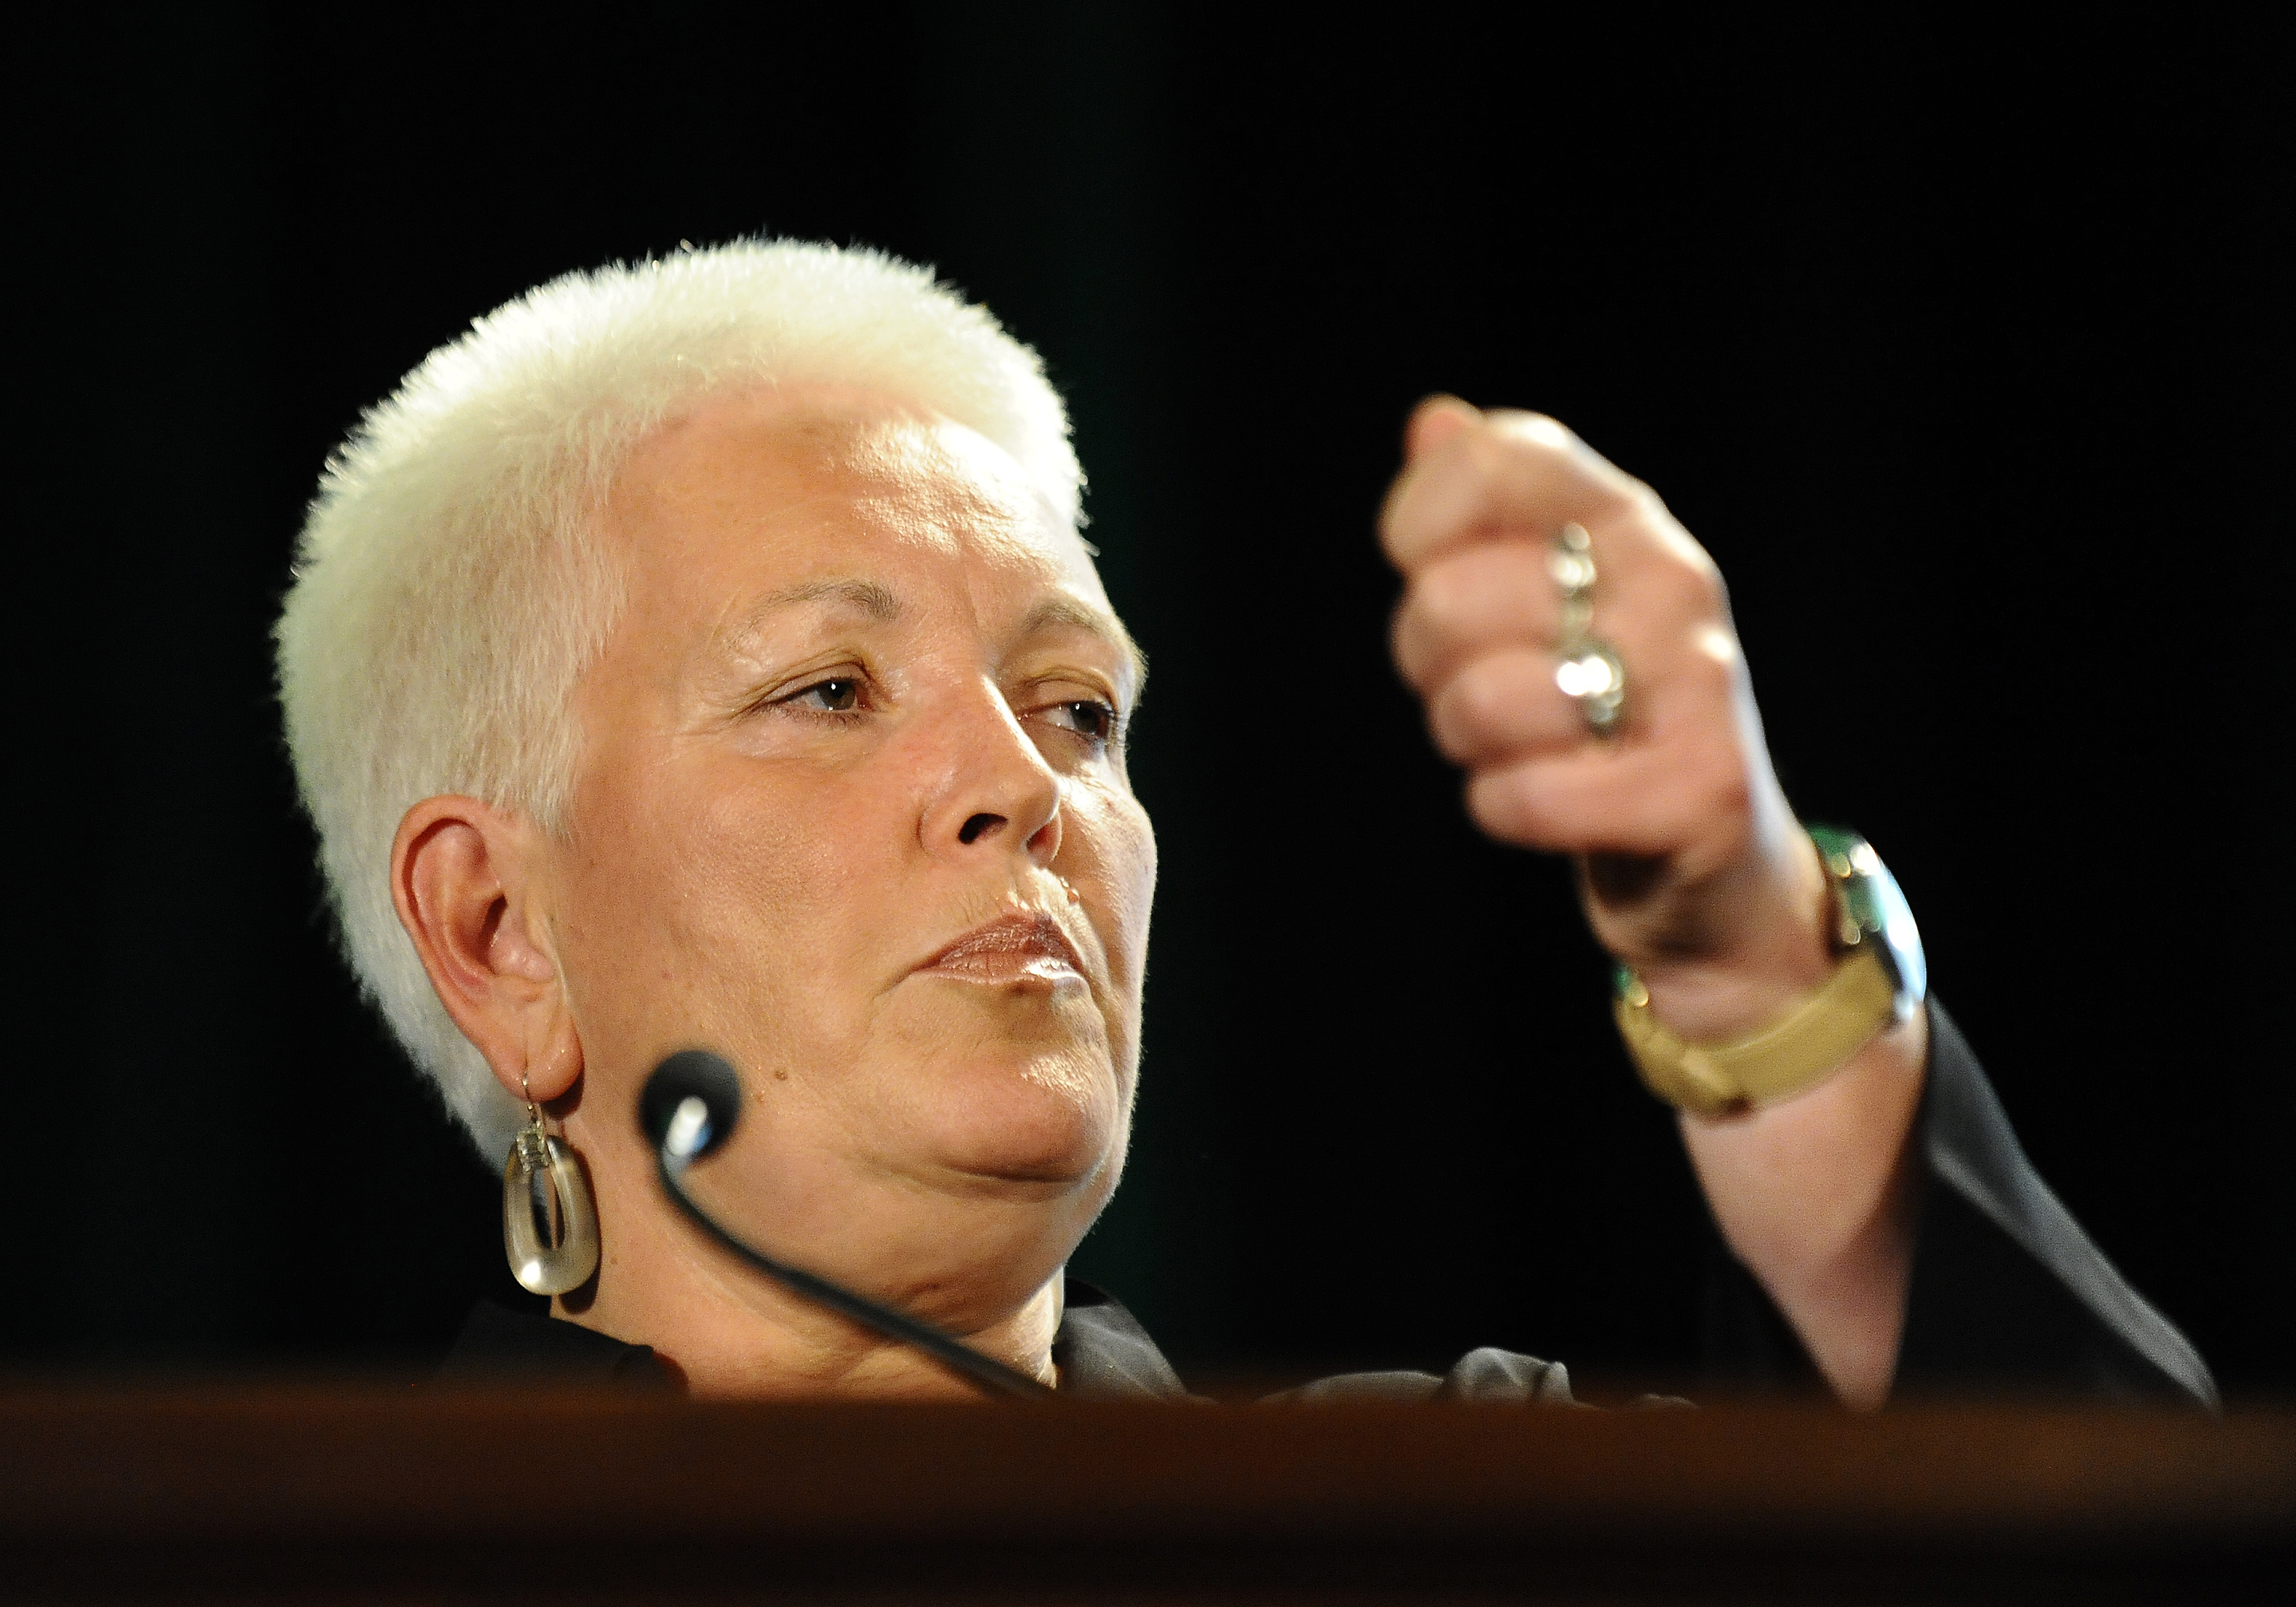 Gayle Smith, special assistant to President Obama and senior director at the National Security Council, speaks during the Society for International Development (SID) World Congress in Washington, DC, on July 29, 2011.